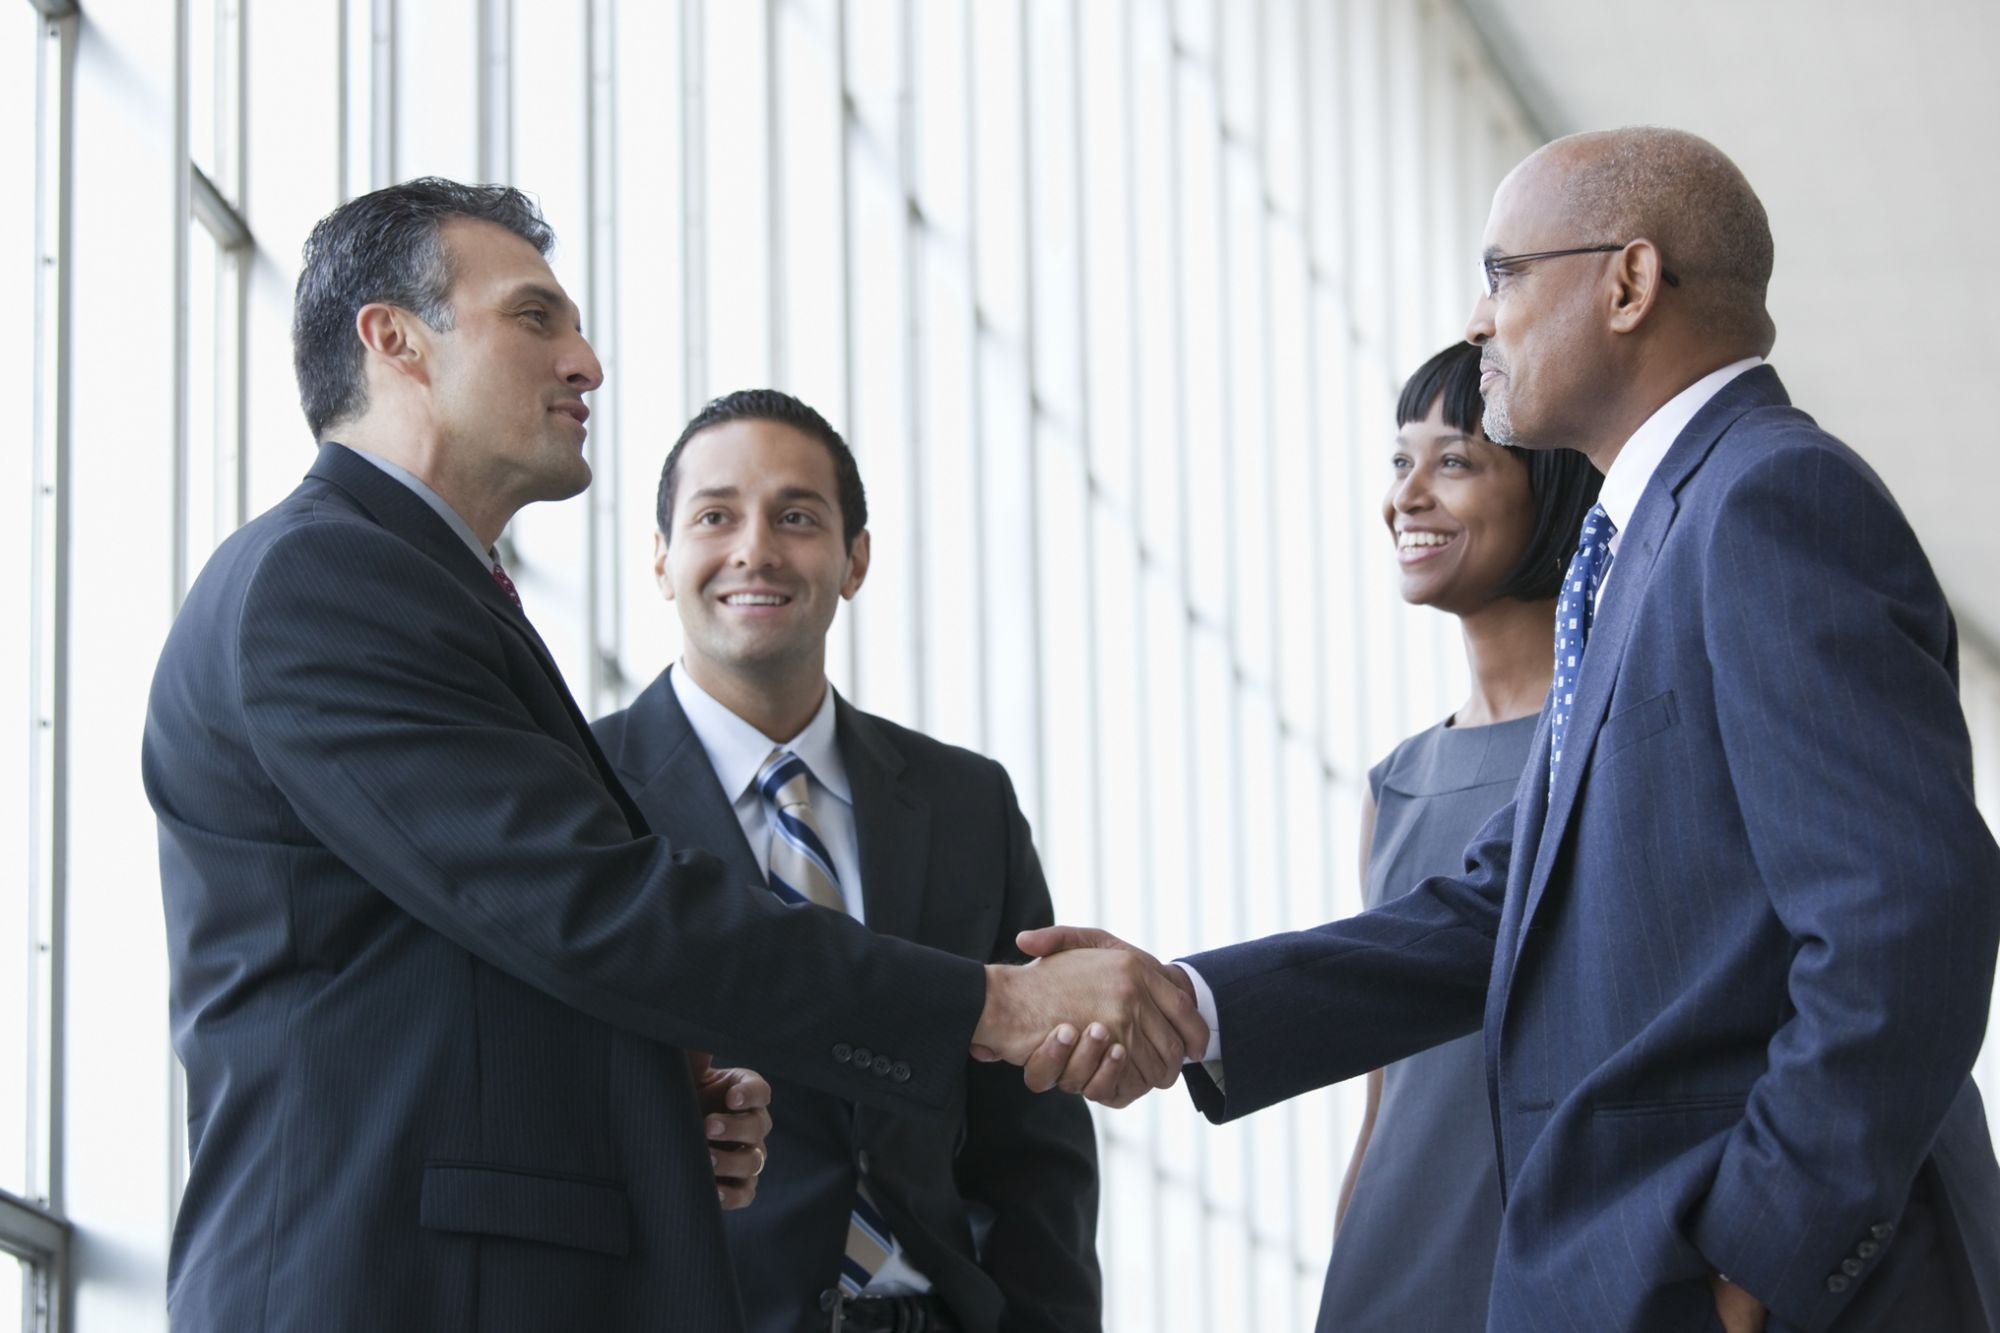 Top 10 Negotiation Tactics Used By Buyers (and How to Respond)